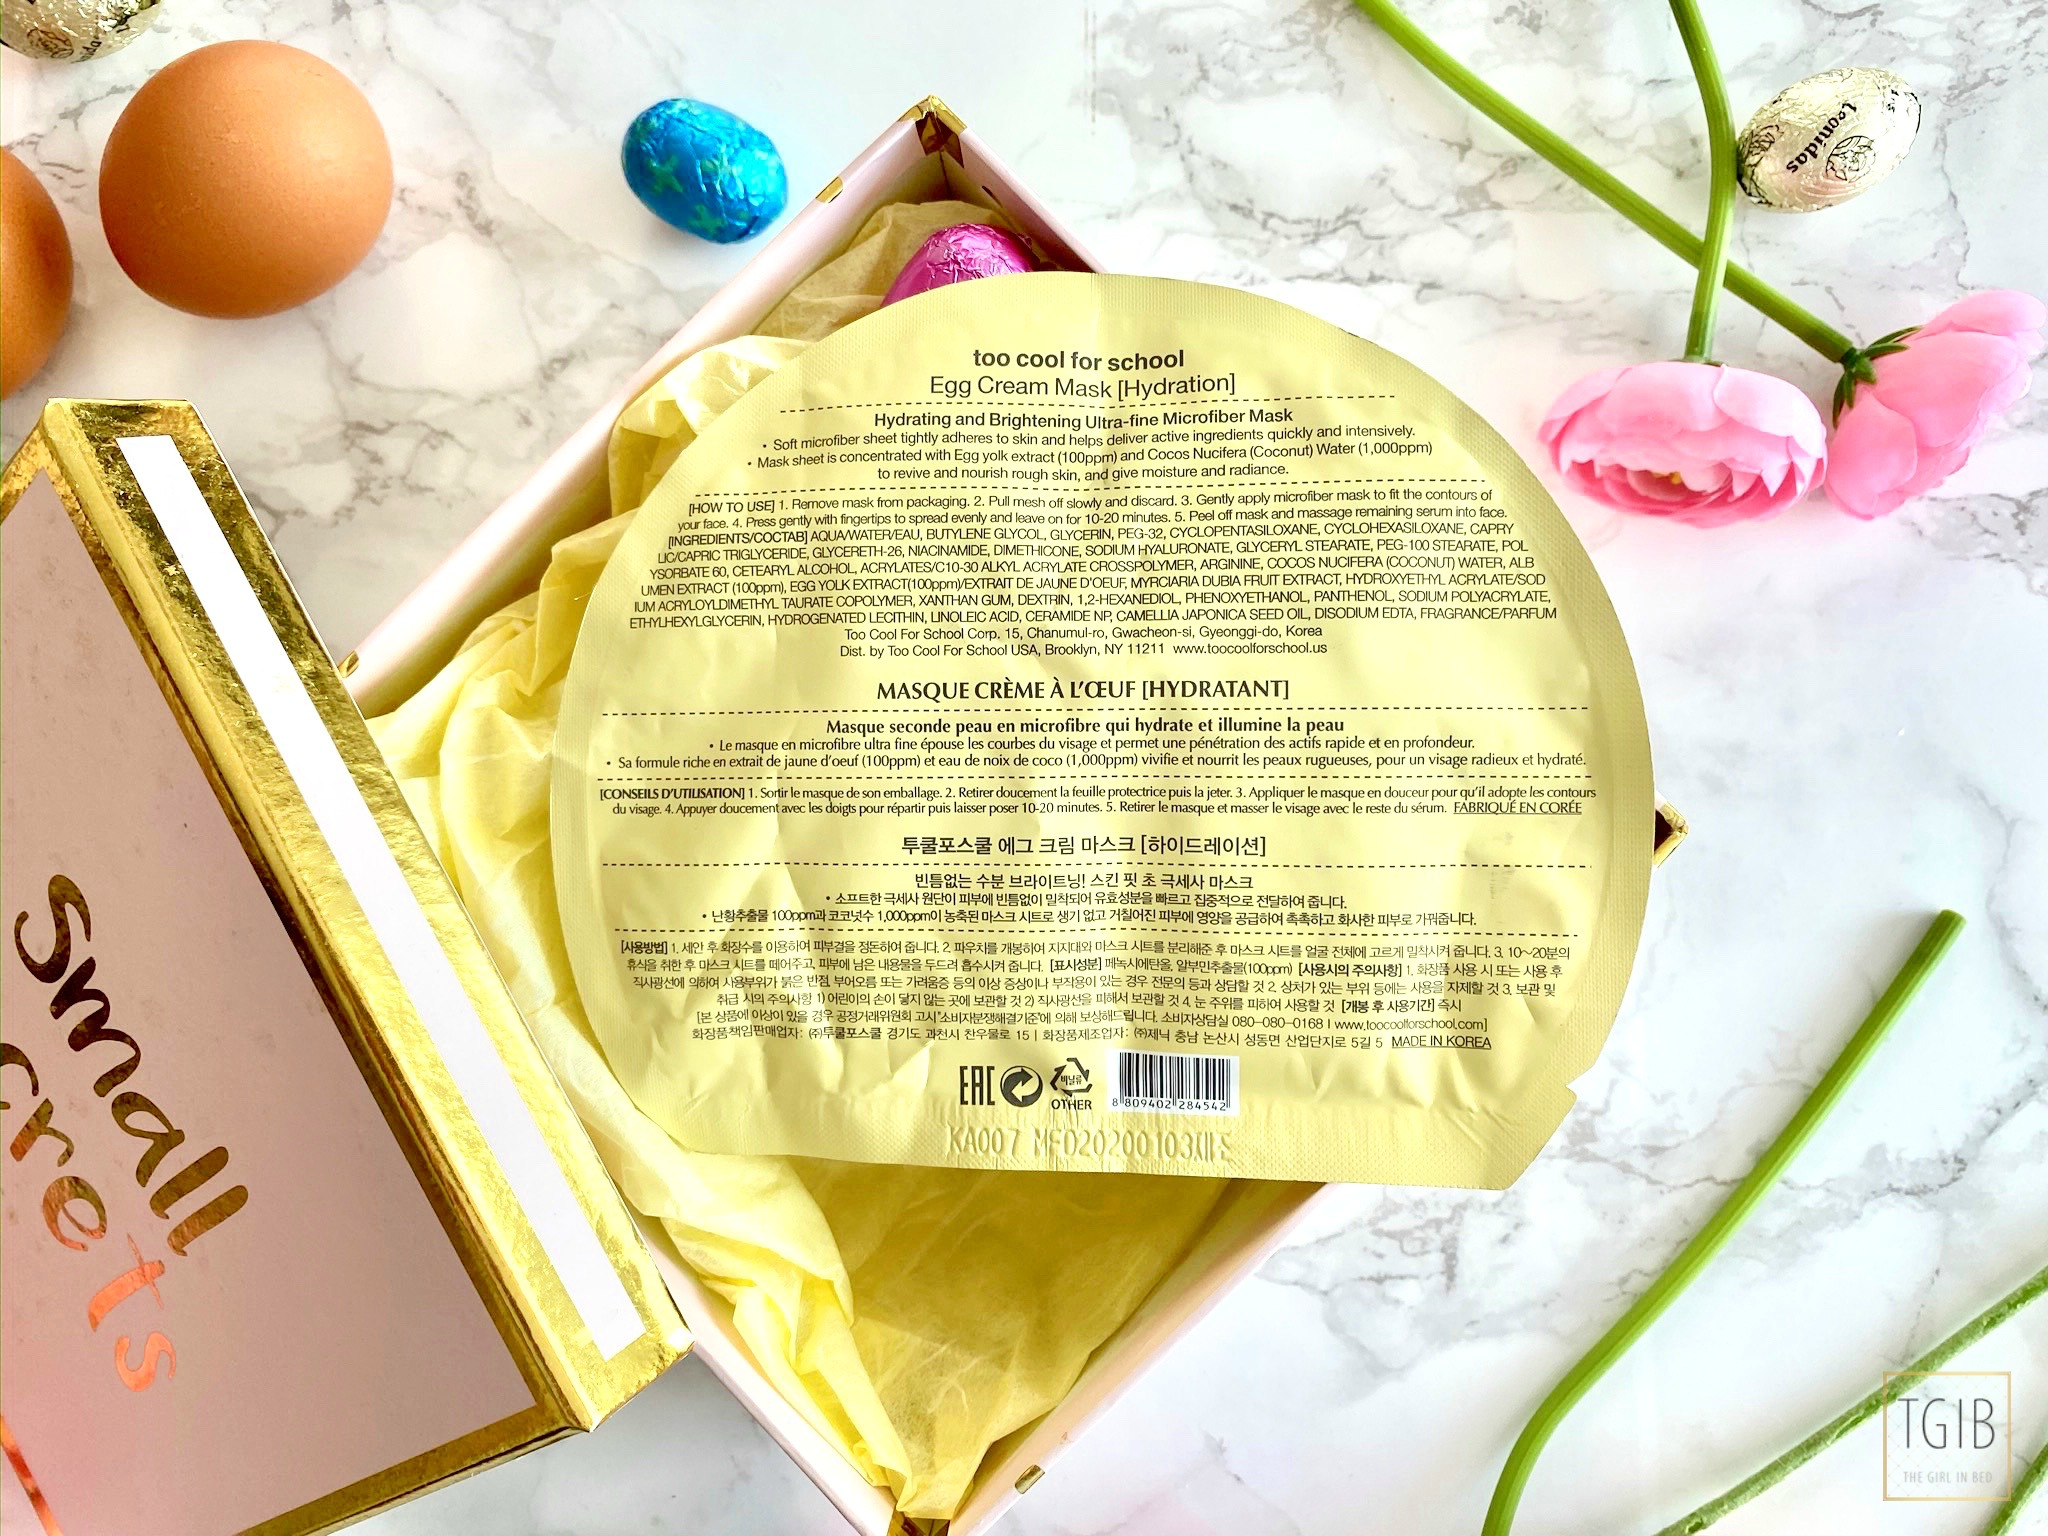 Too Cool For School Egg Cream Mask ingredients Hema